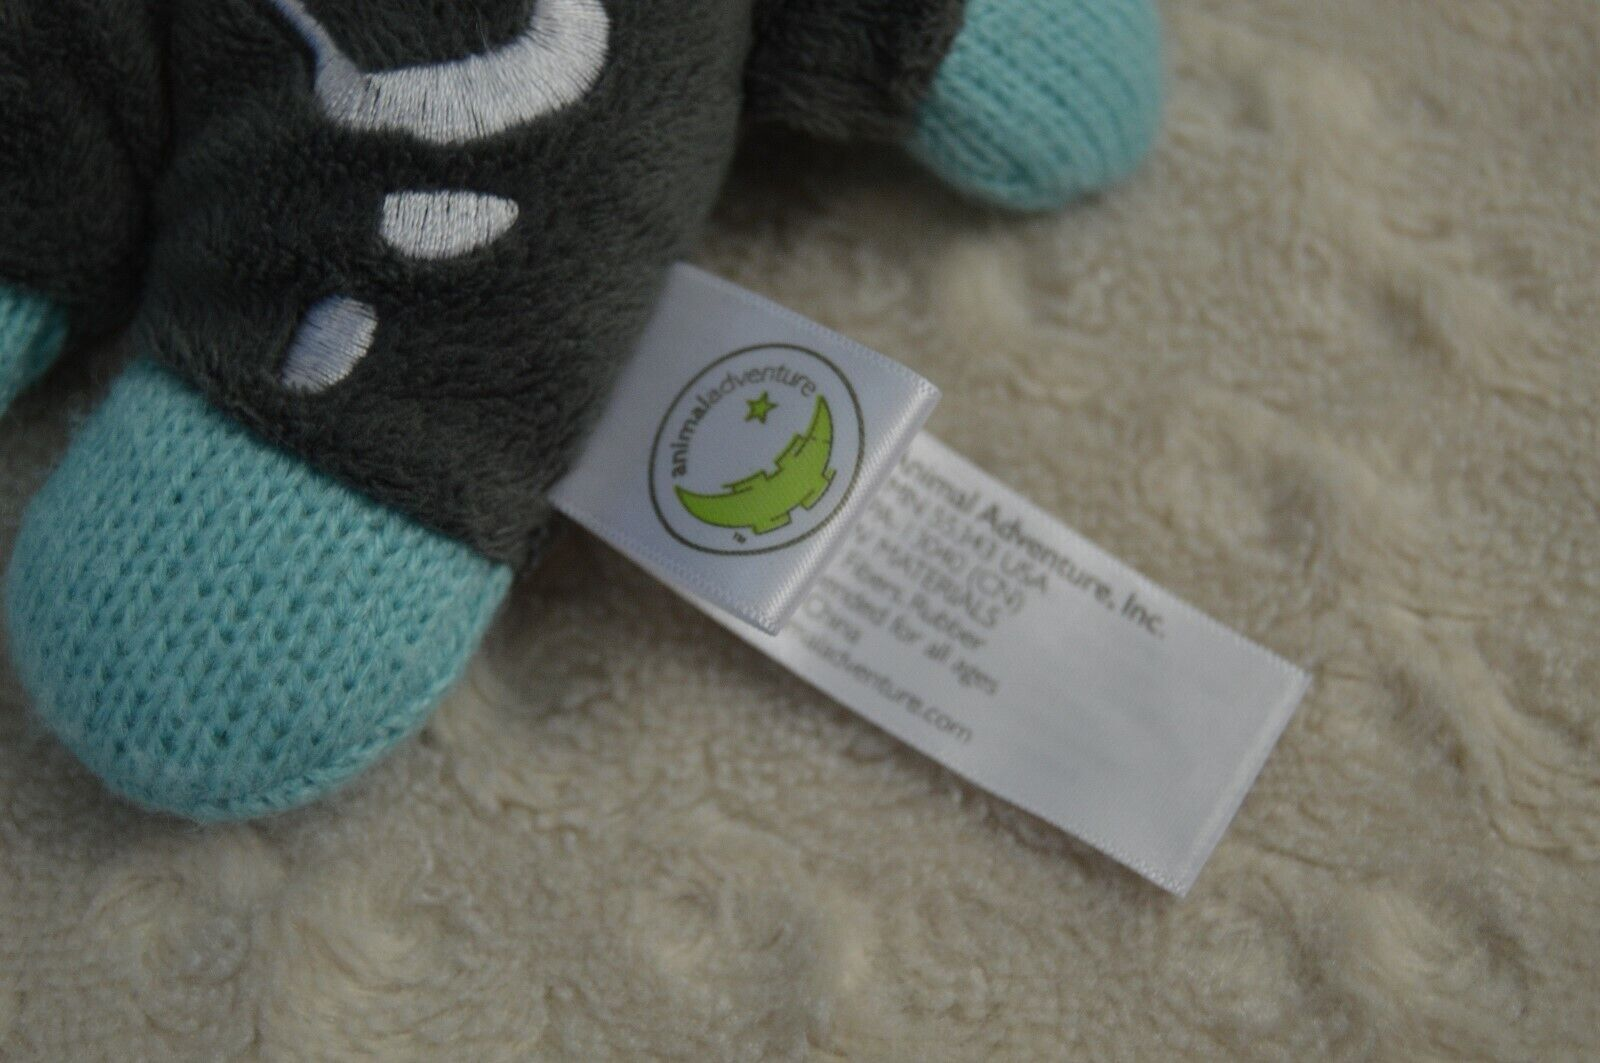 Animal Adventure Sock Monkey Plush Stuffed Animal Blue Gray Skeleton X-Ray Knit - $17.95